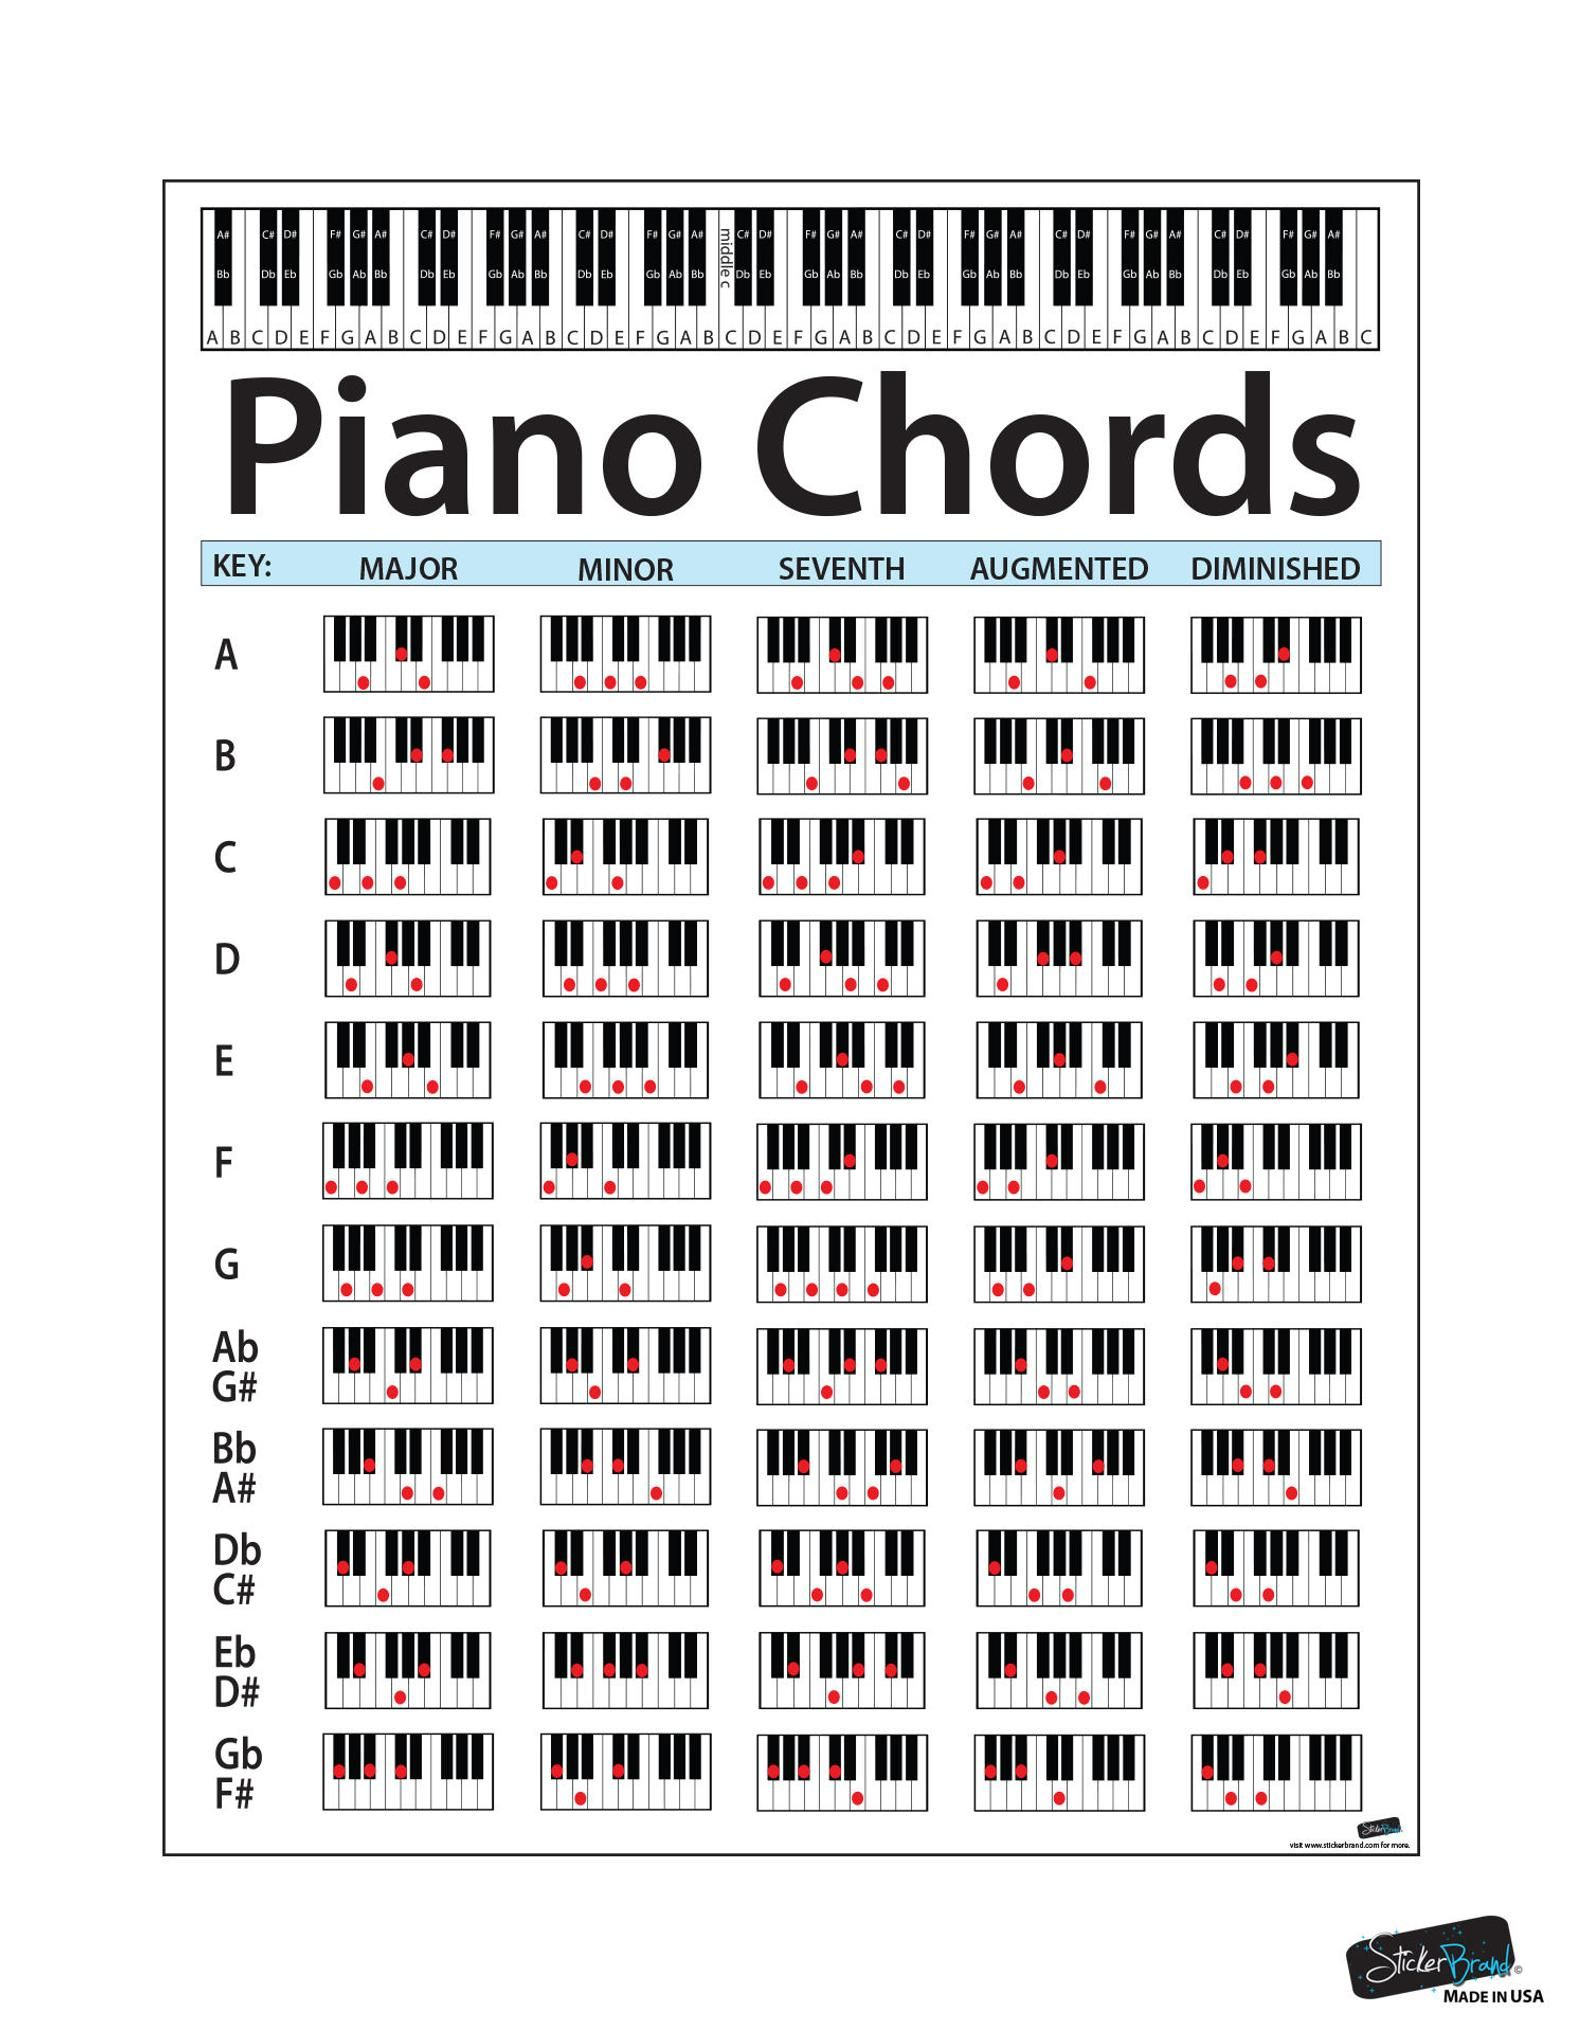 Piano Chord Chart Poster Educational Handy Guide Chart Print Etsy In 2020 Piano Chords Chart Piano Music Piano Music Easy